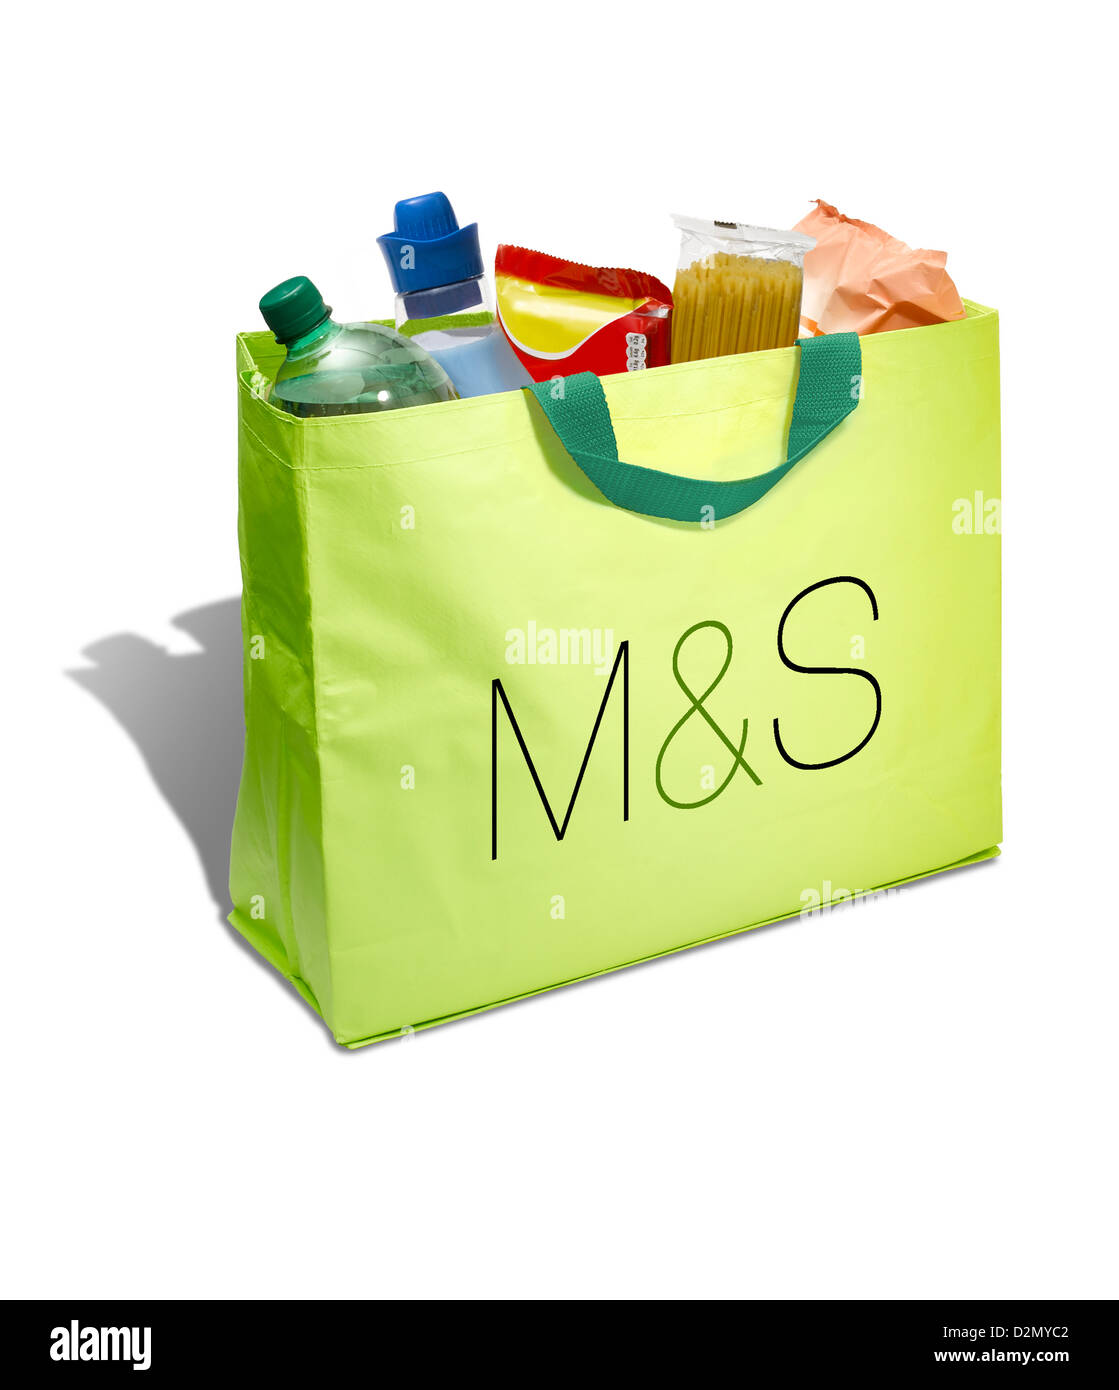 A lime green Marks and Spencer shopping bag on a white background - Stock Image